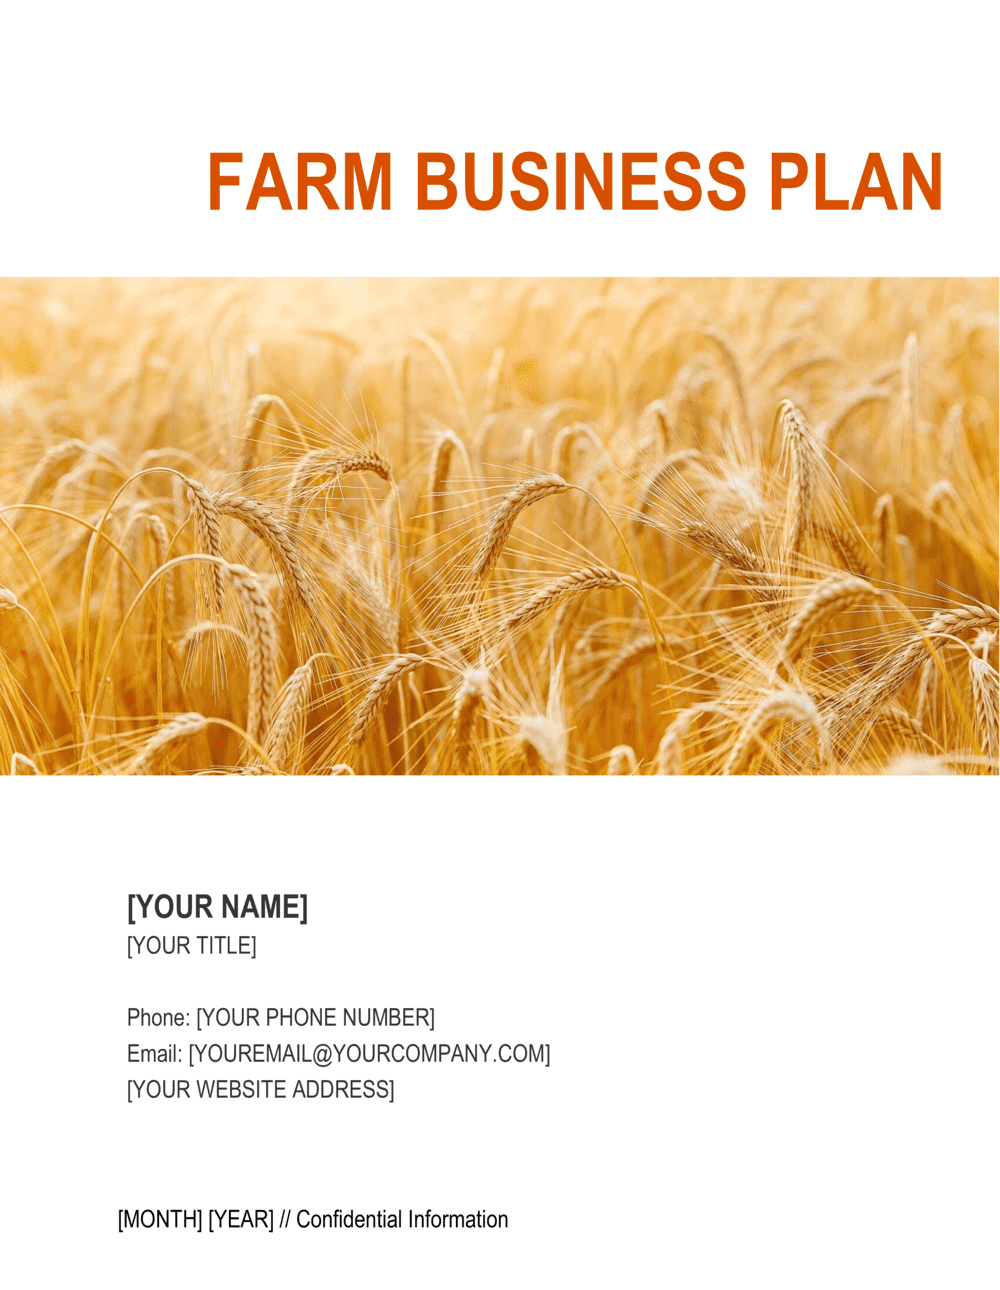 Business-in-a-Box's Farm Business Plan Template